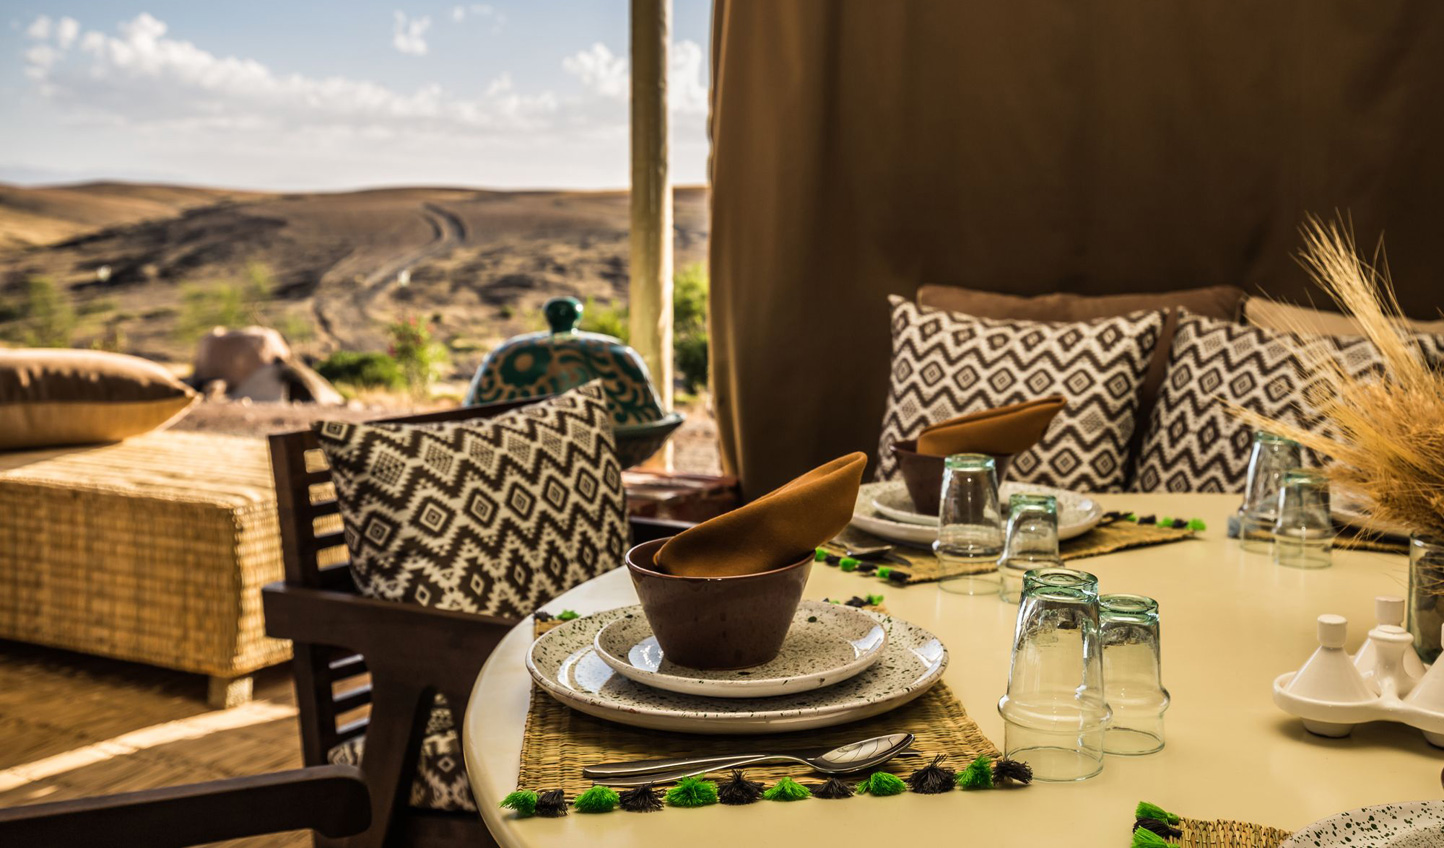 Savour traditional Moroccan cuisine with dishes prepared using produce from the onsite kitchen garden